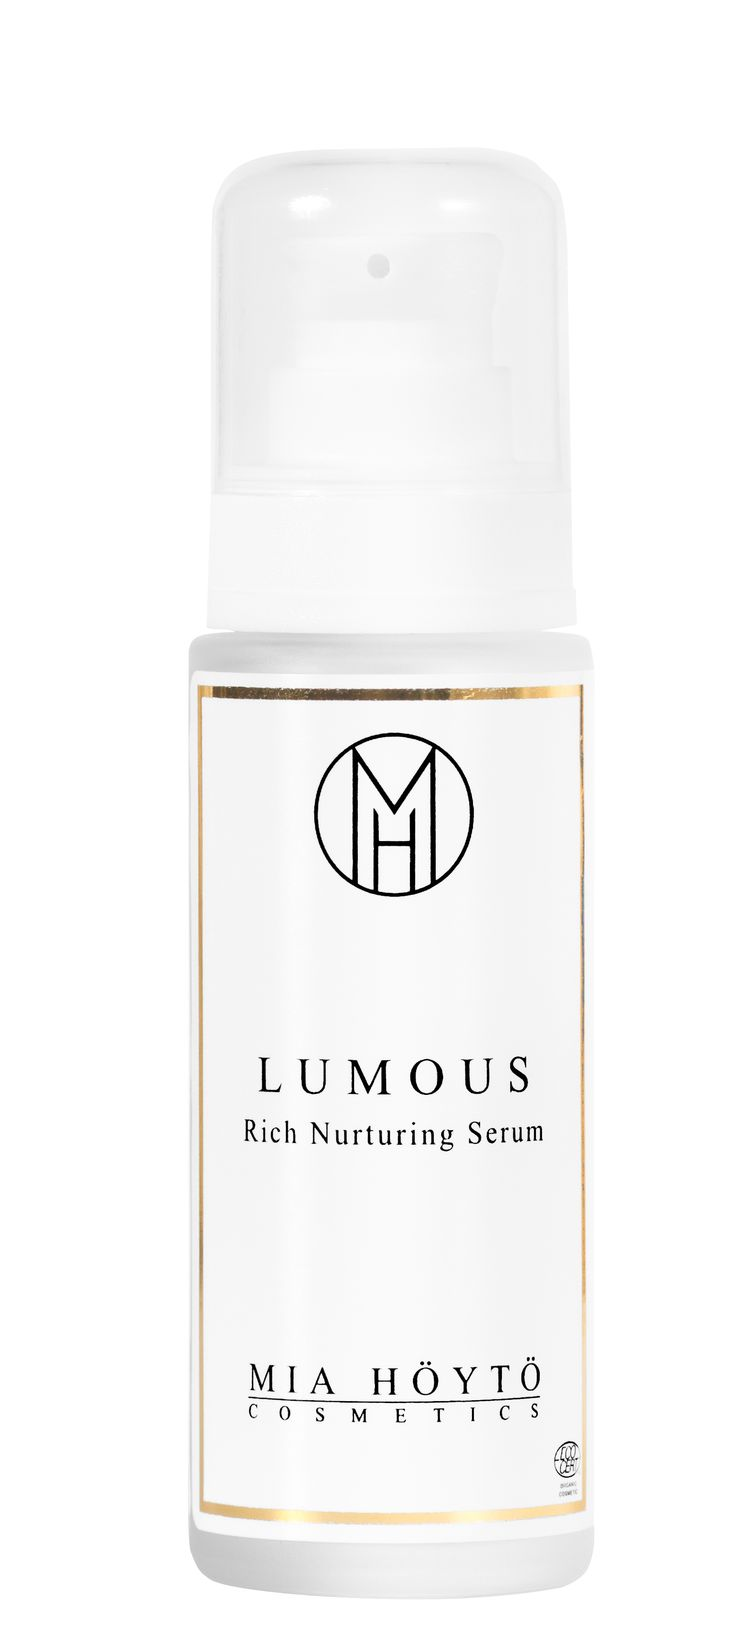 Lumous the Serum